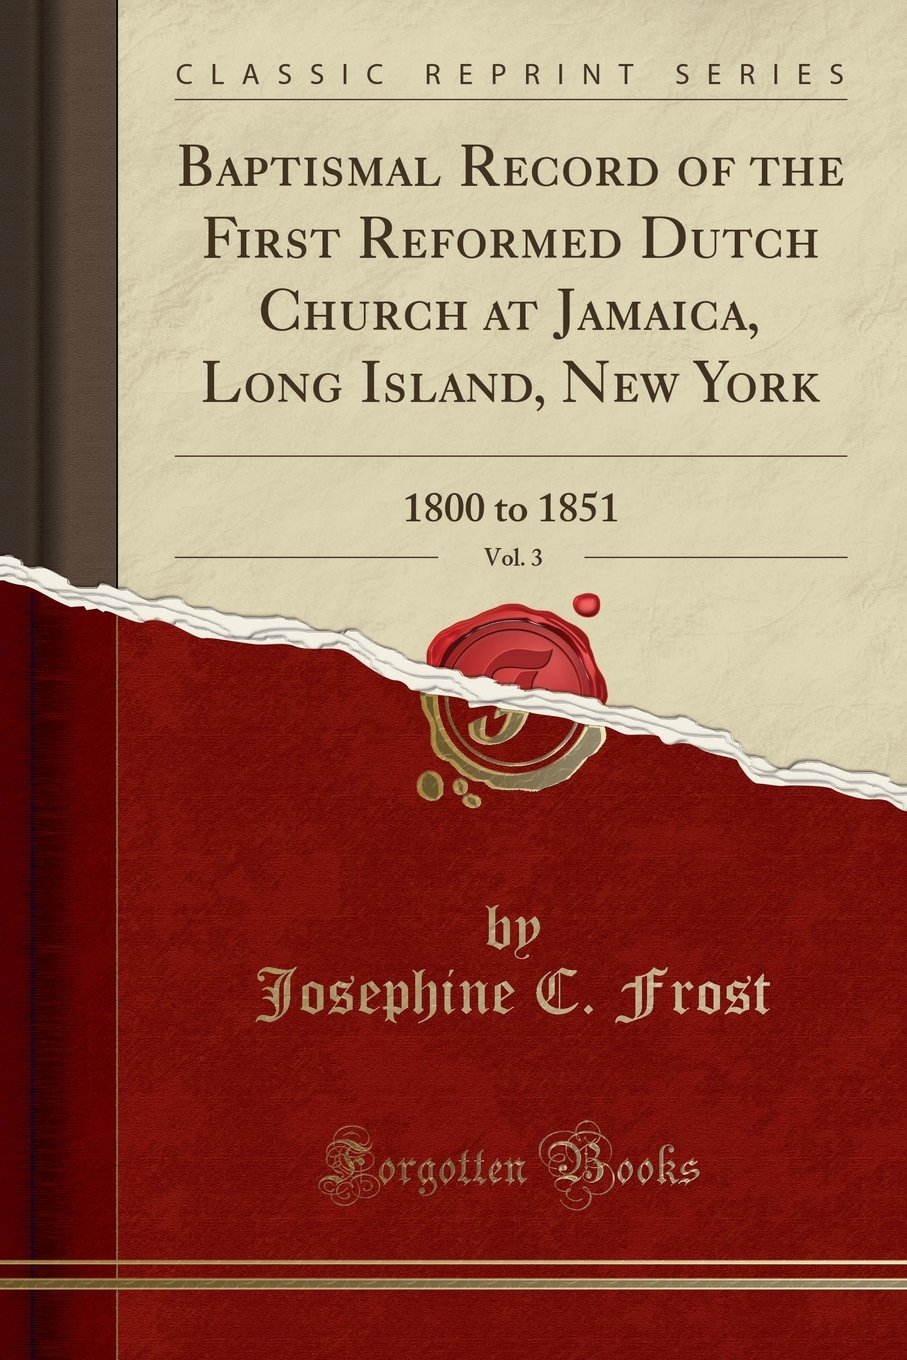 Baptismal Record of the First Reformed Dutch Church at Jamaica, Long Island, New York, Vol. 3: 1800 to 1851 (Classic Reprint)